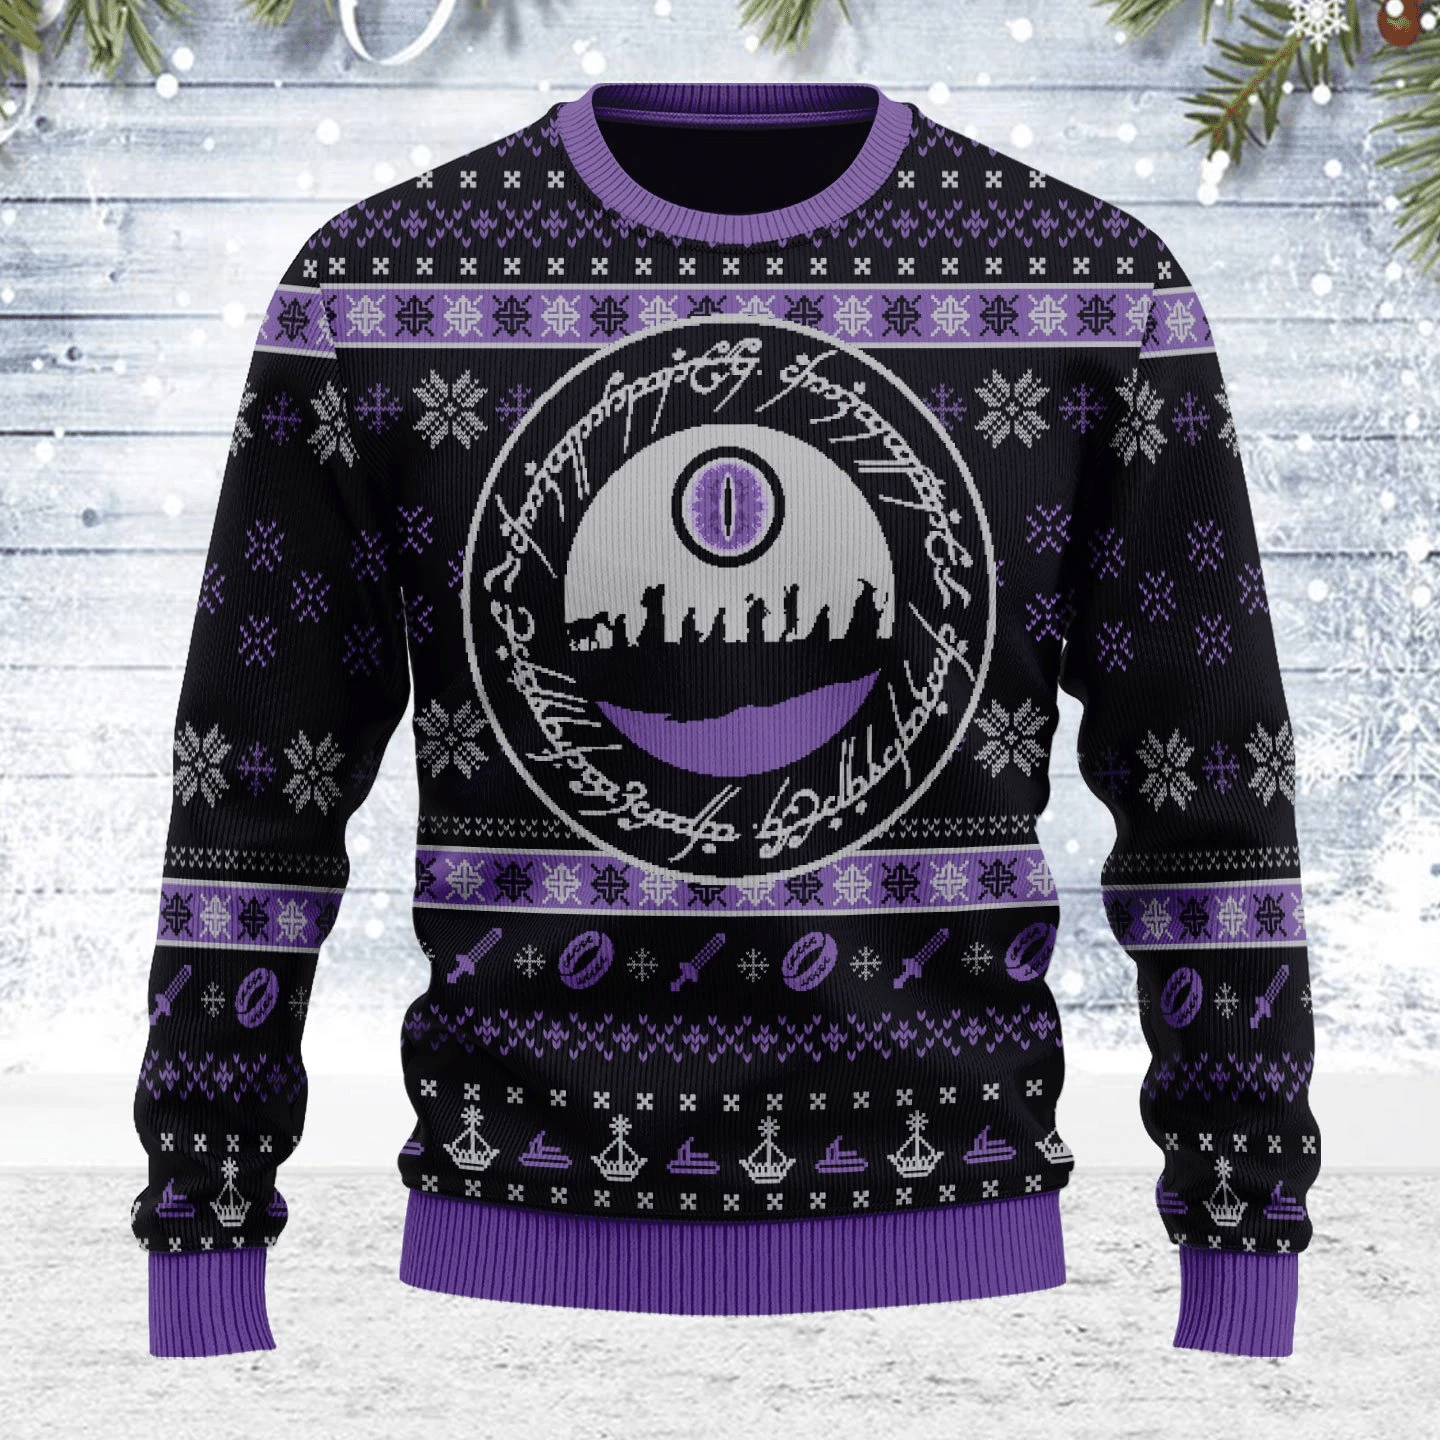 Merry Christmas Gearhomies Unisex Ugly Christmas Sweater The Lord of the Rings The Fellowship 3D Apparel